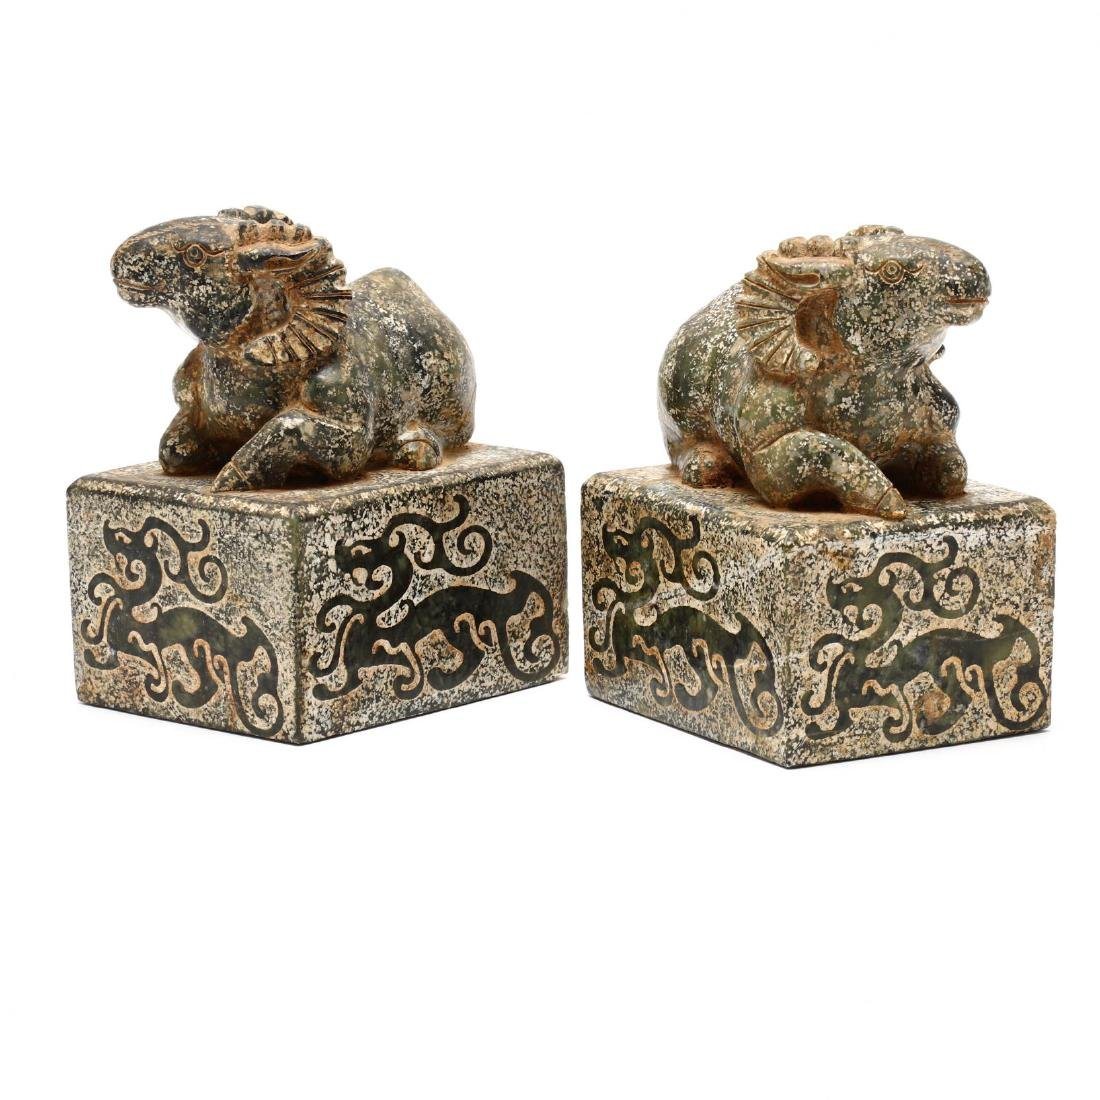 A Pair of Chinese Ram Stone Seals - 2